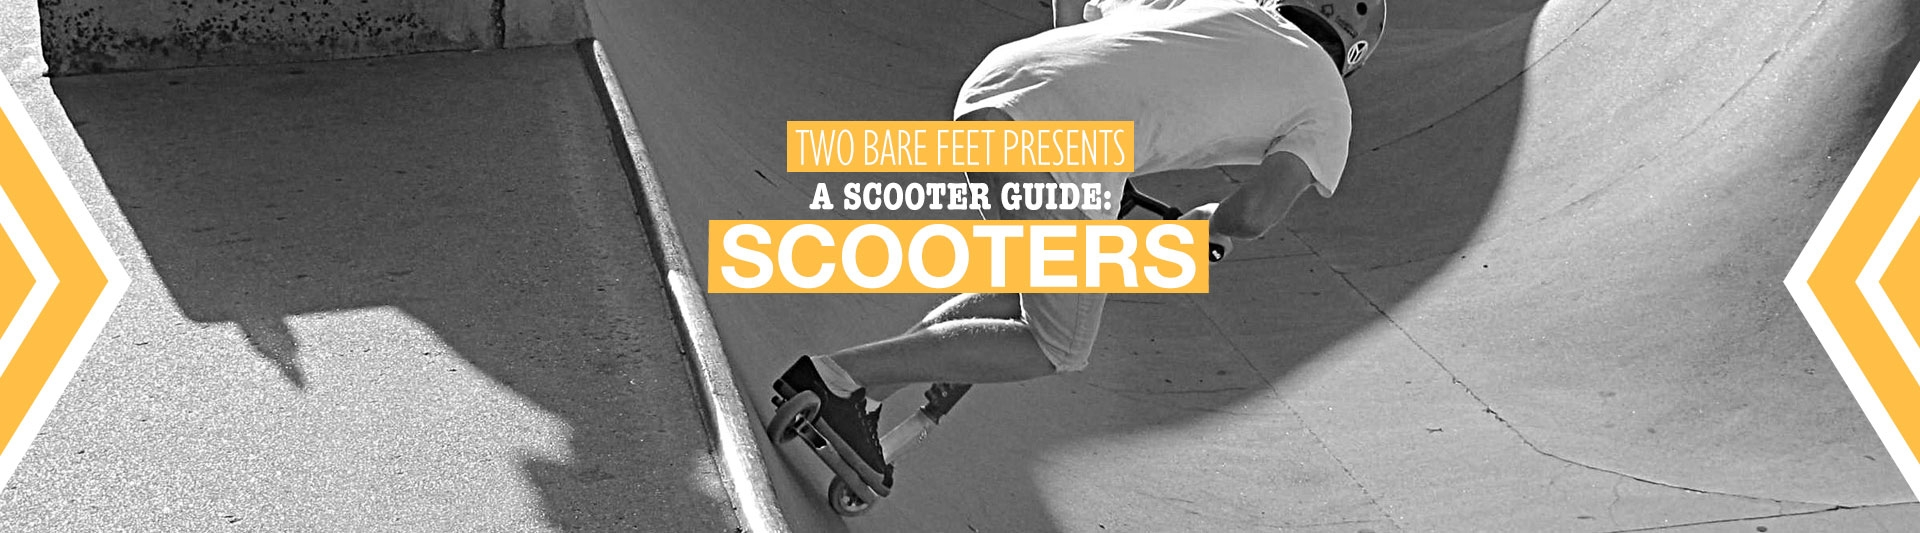 scooters banner